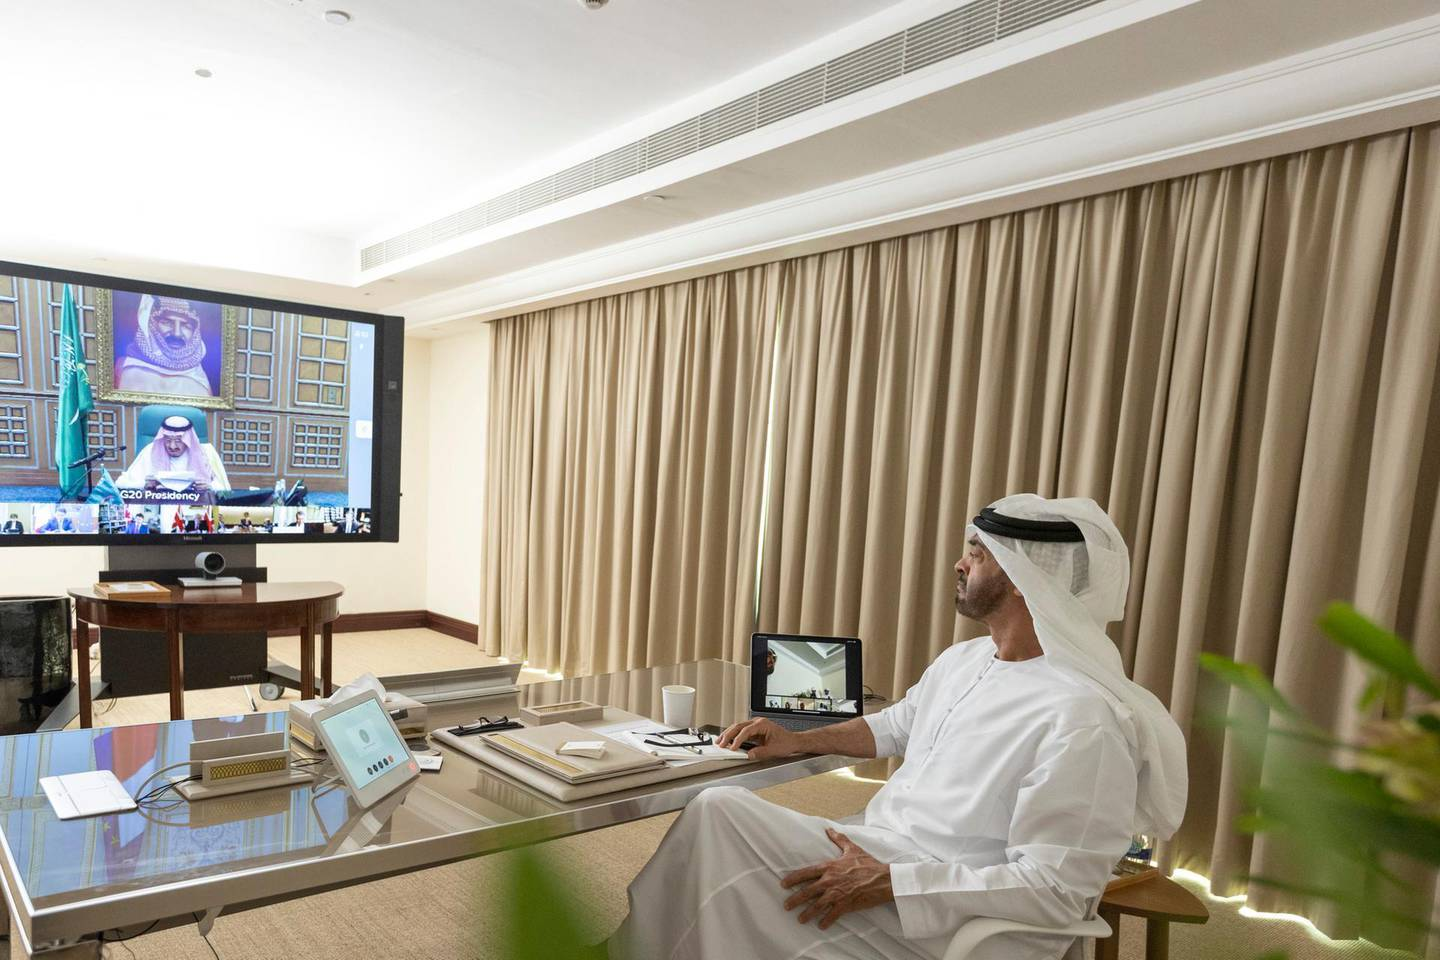 ABU DHABI, UNITED ARAB EMIRATES - March 26, 2020: HH Sheikh Mohamed bin Zayed Al Nahyan, Crown Prince of Abu Dhabi and Deputy Supreme Commander of the UAE Armed Forces, participates in the virtual G20 Leaders Summit.   ( Mohamed Al Hammadi / Ministry of Presidential Affairs ) ---